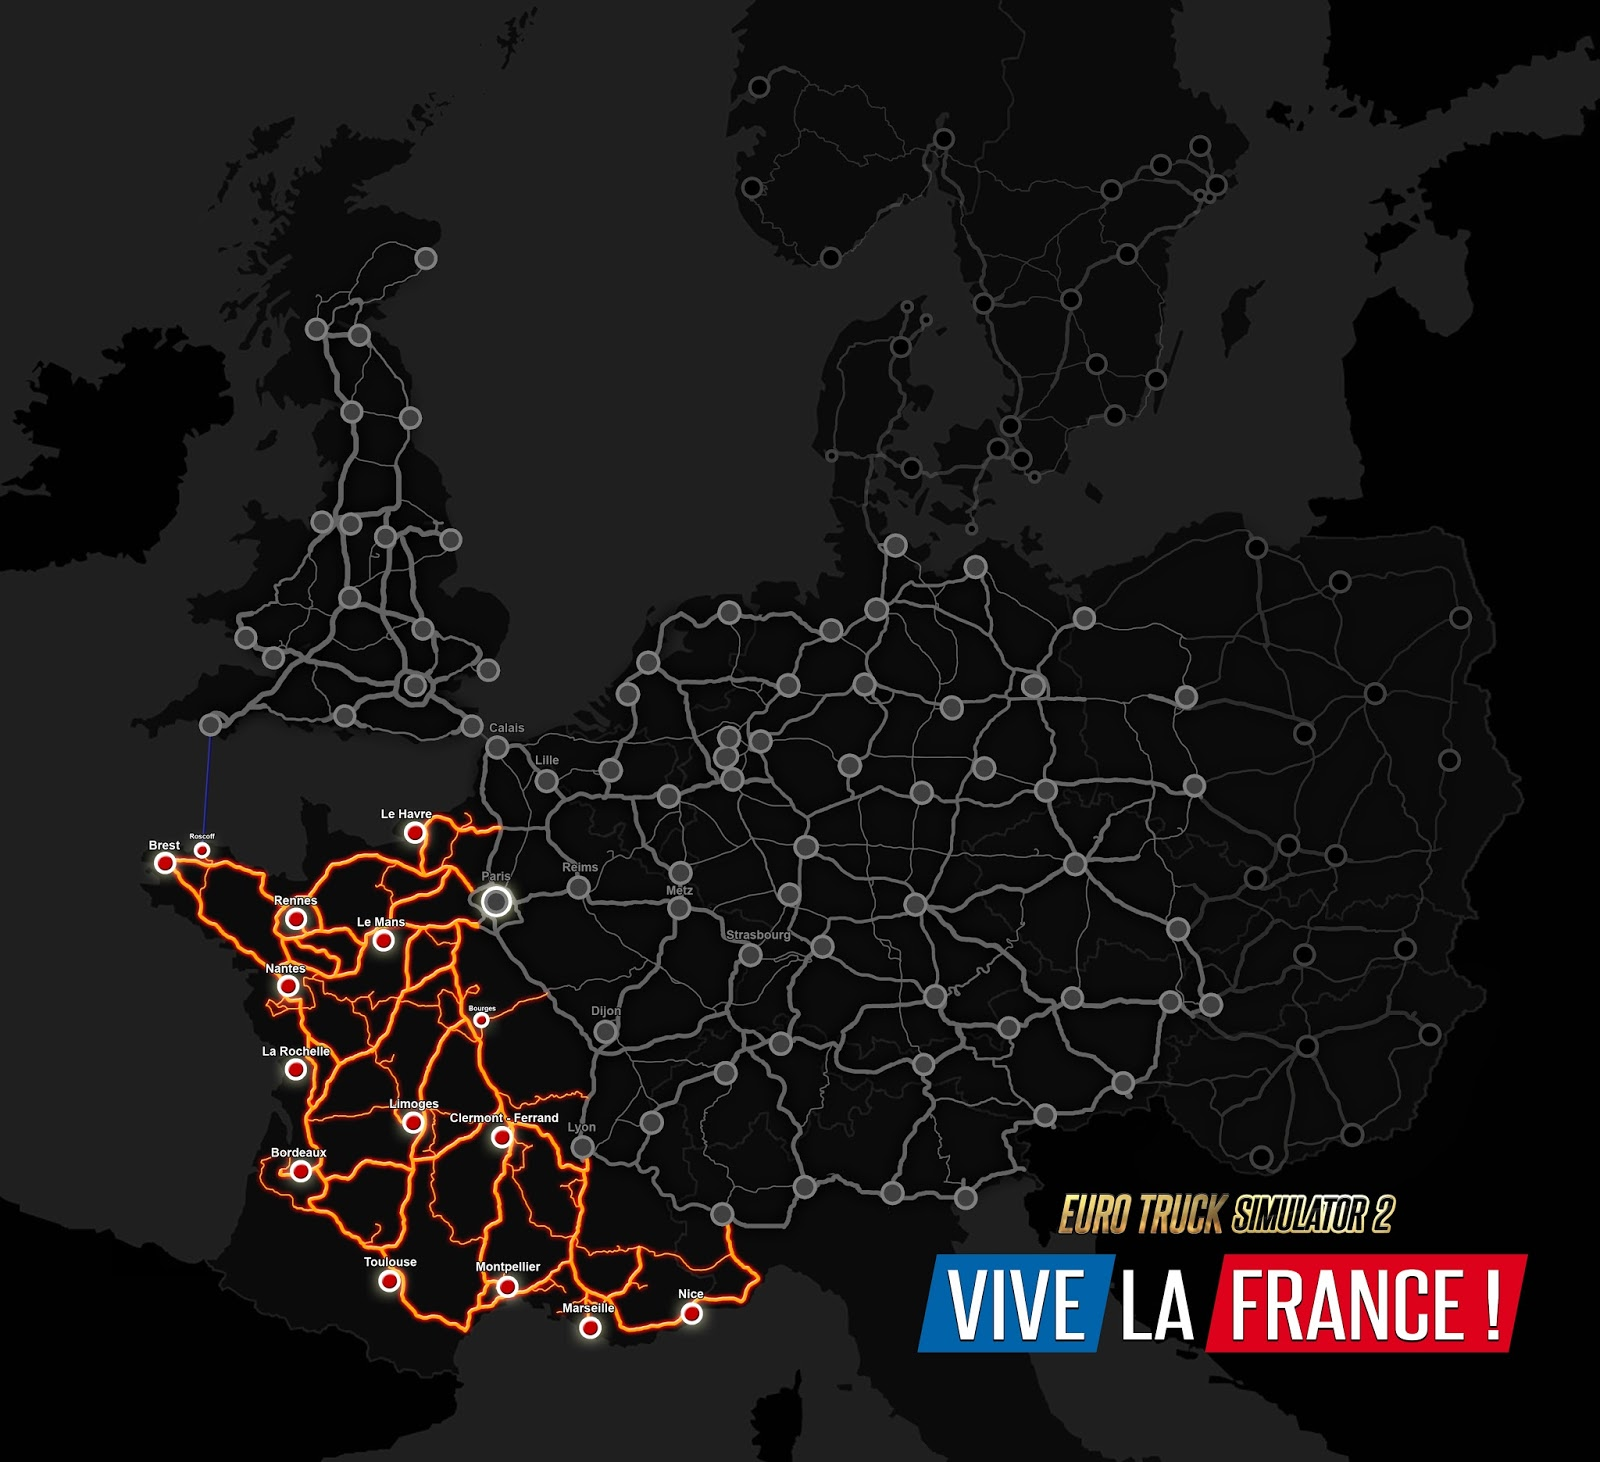 La France Map.Scs Software S Blog The Roads Of Vive La France